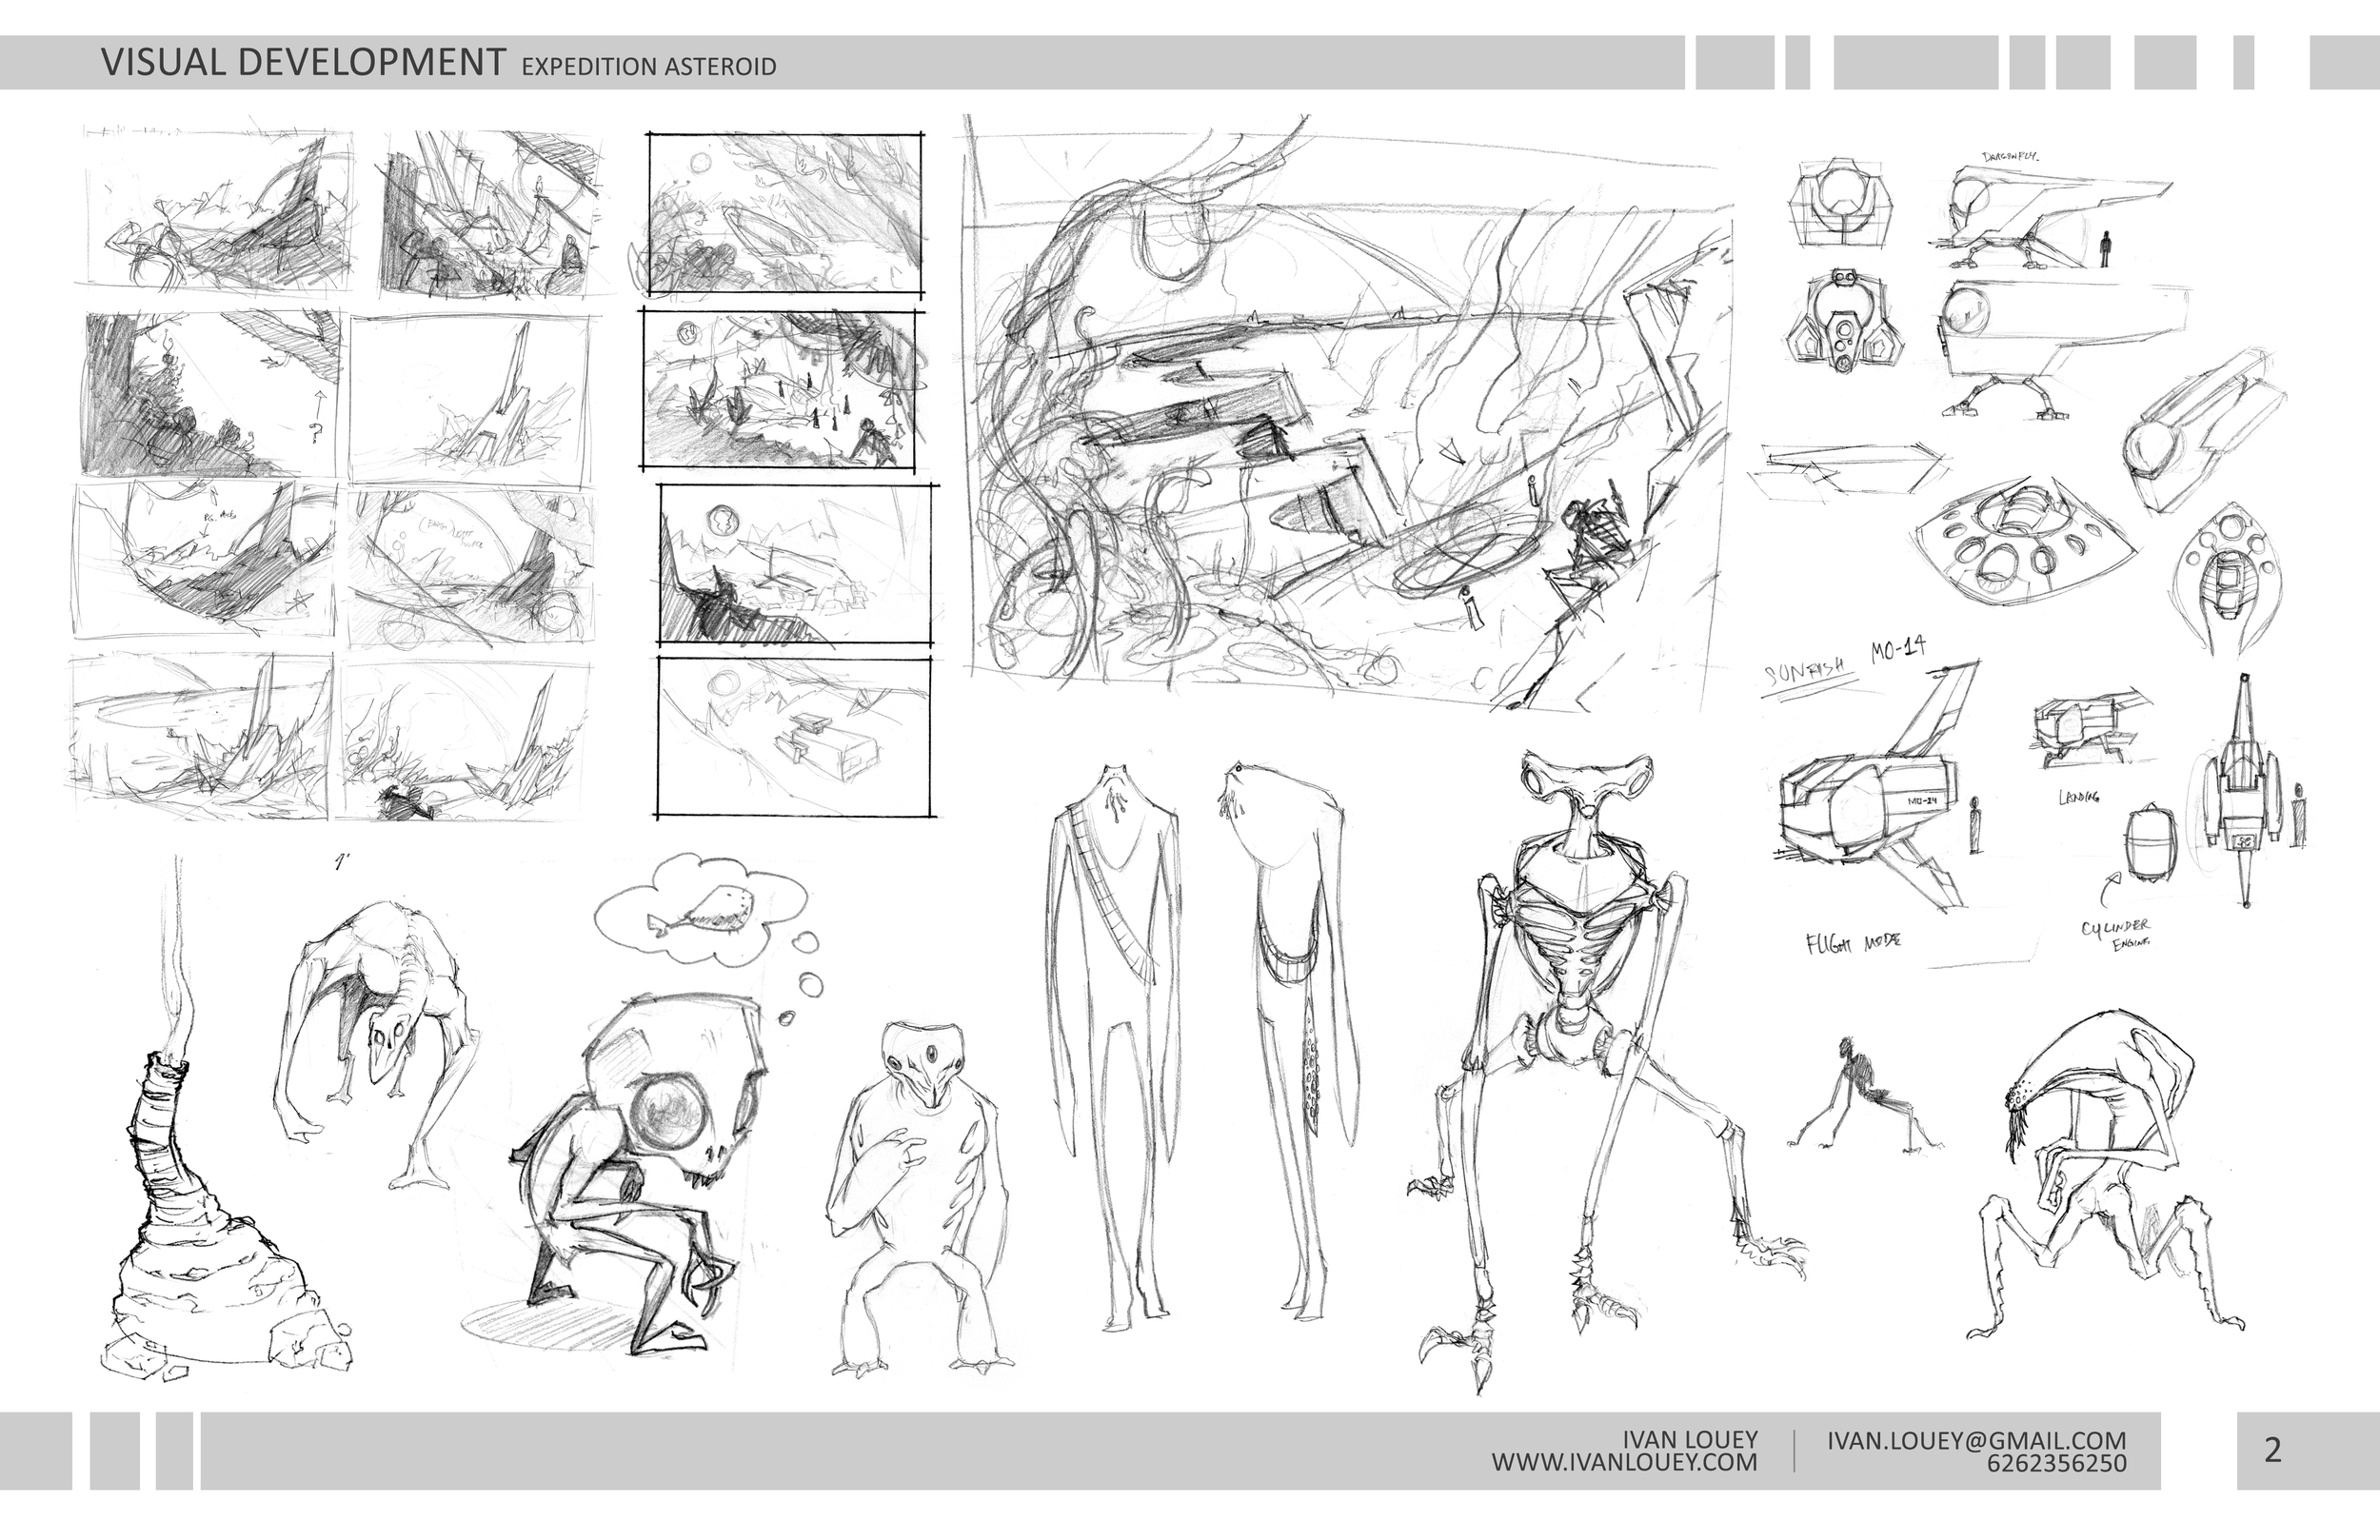 A selection of the thumbs and doodles